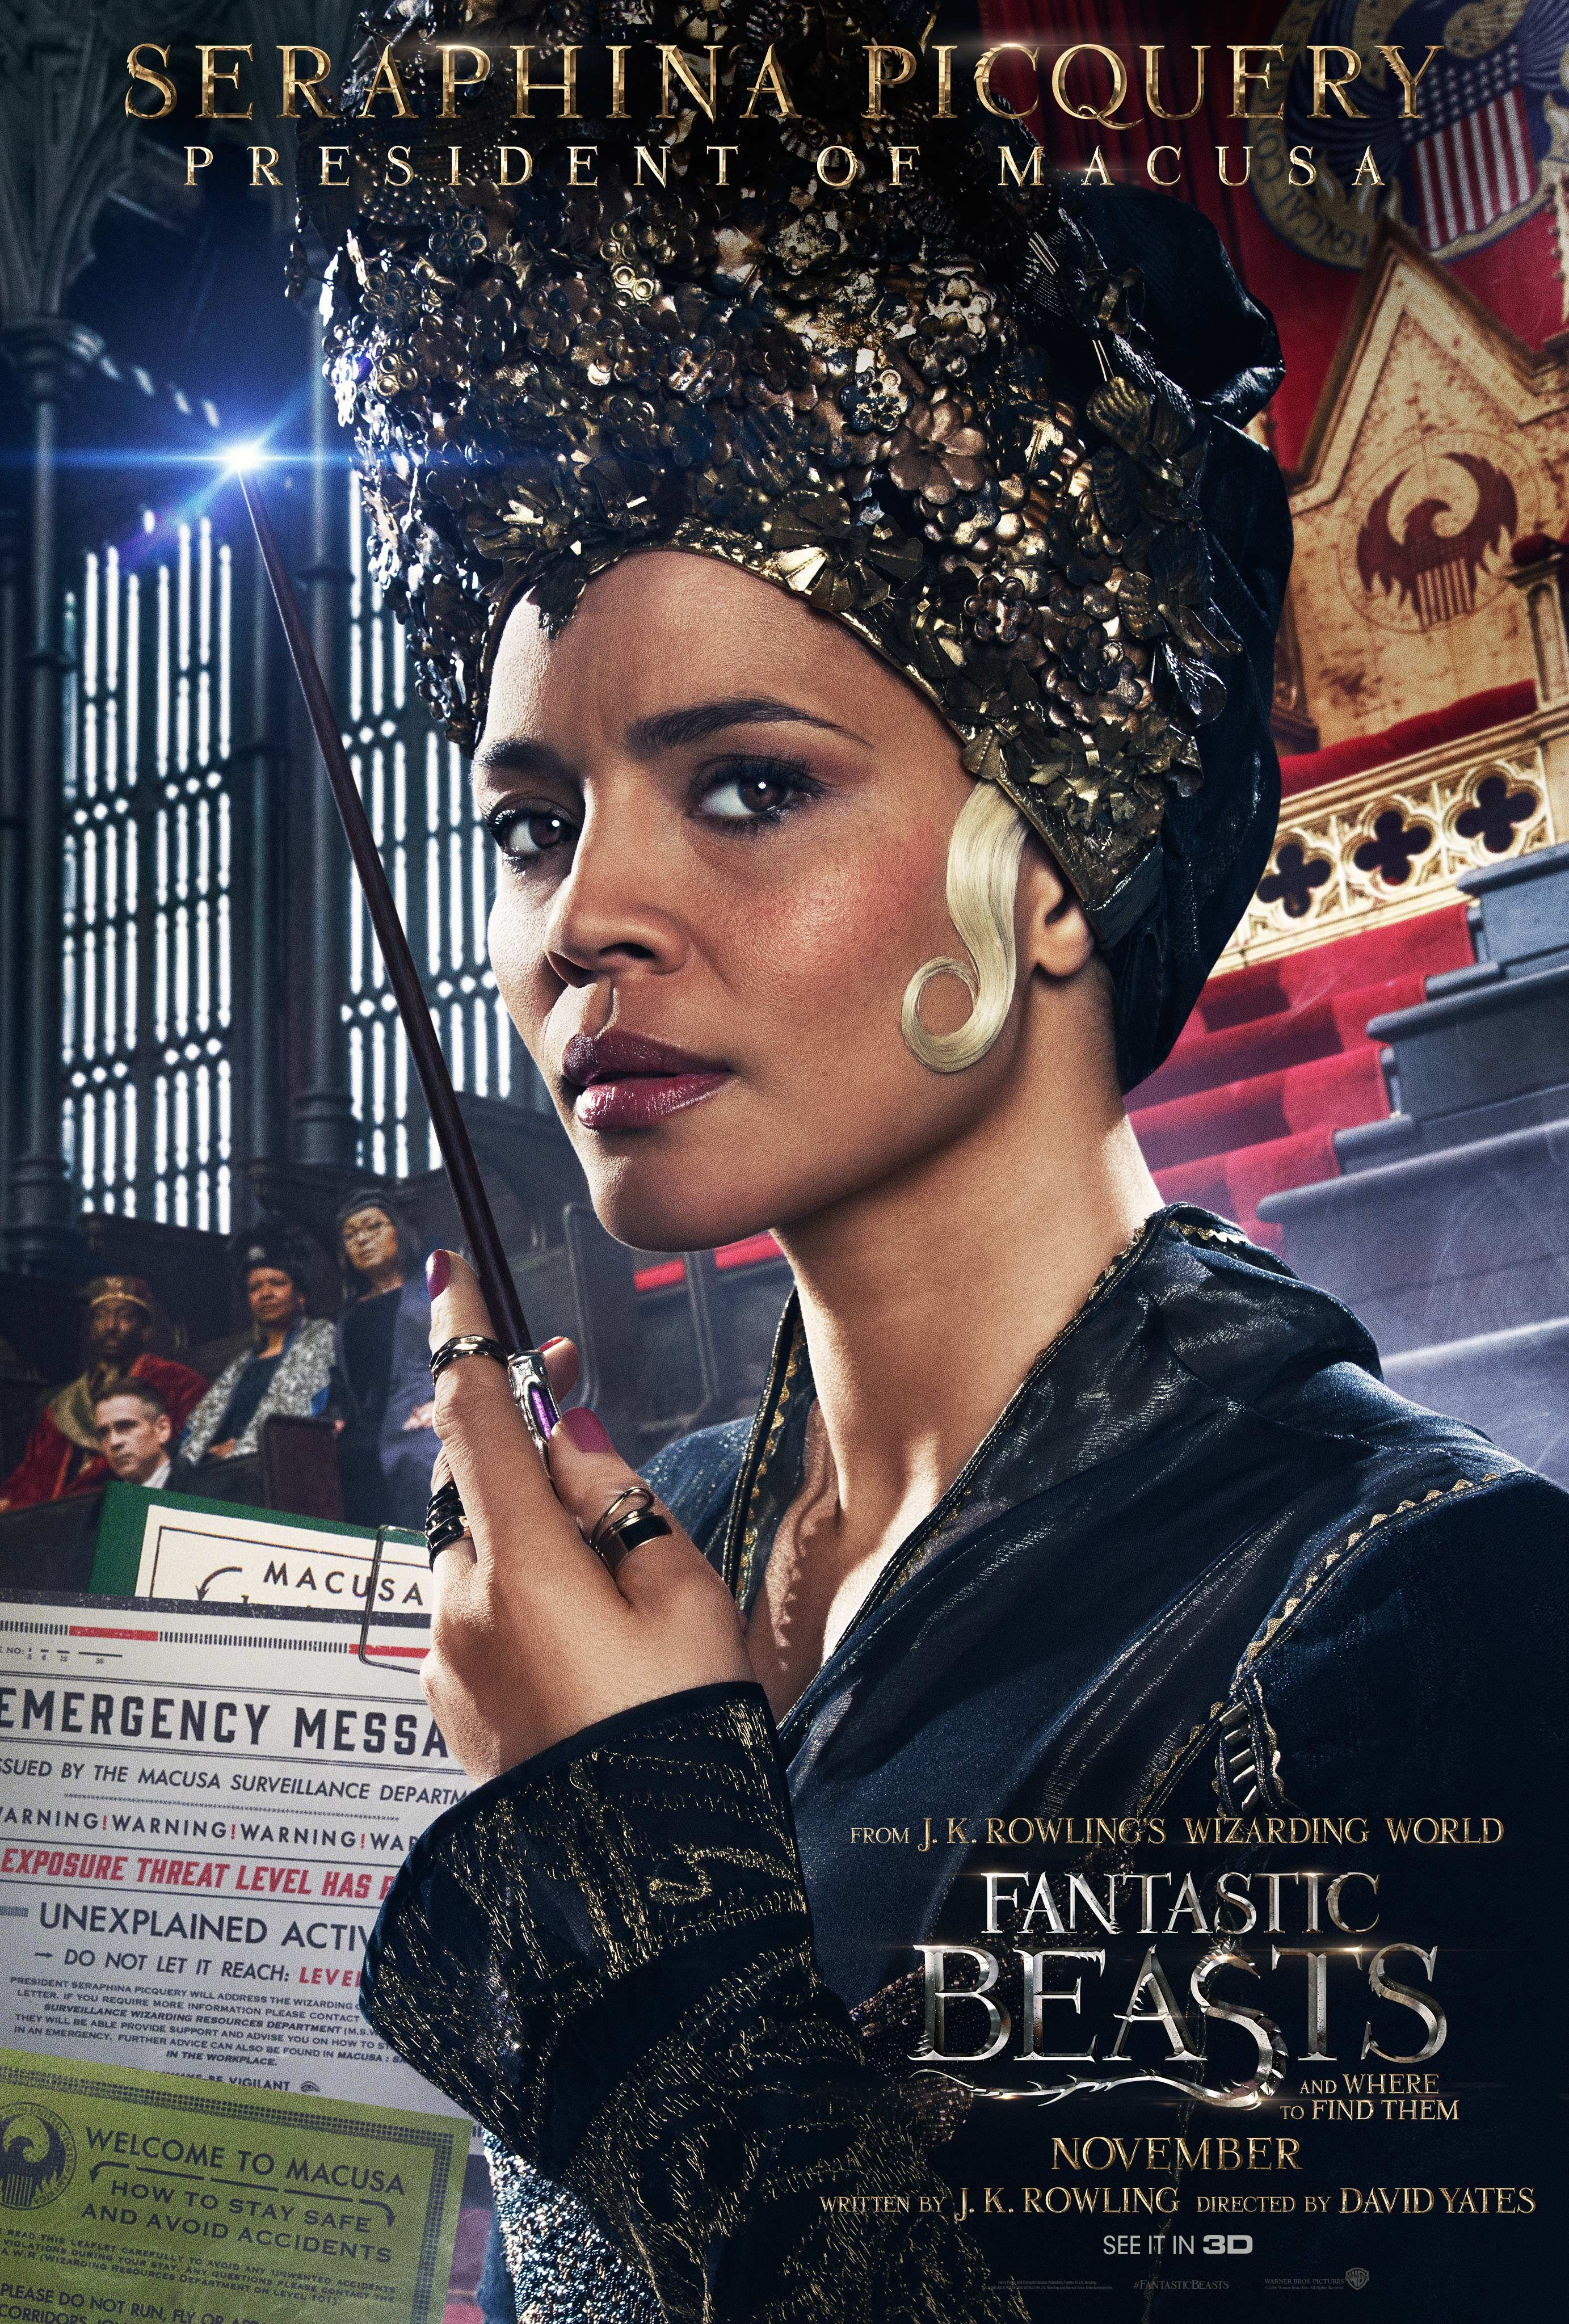 Seraphina Picquery Fantastic Beasts And Where To Find Them